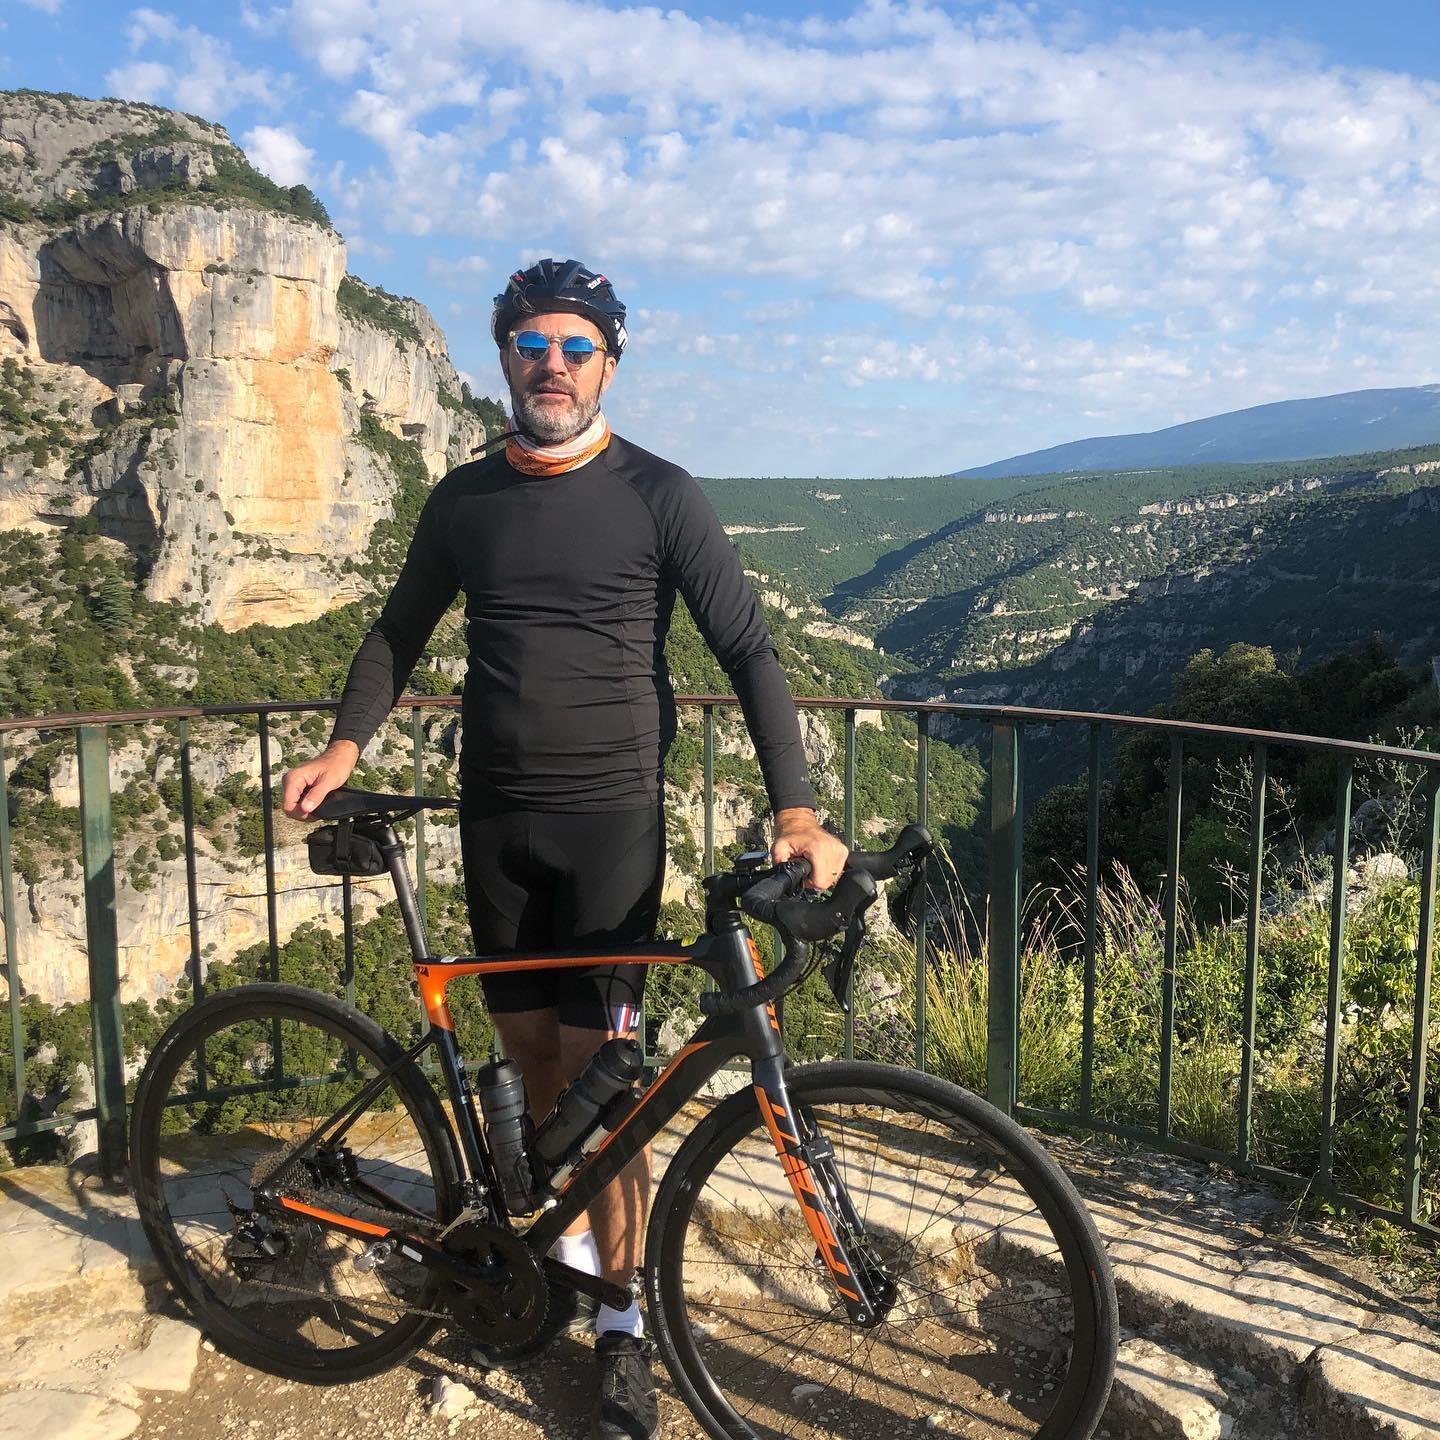 ride-and-more-travel-mont-ventoux-provence-luberon-1